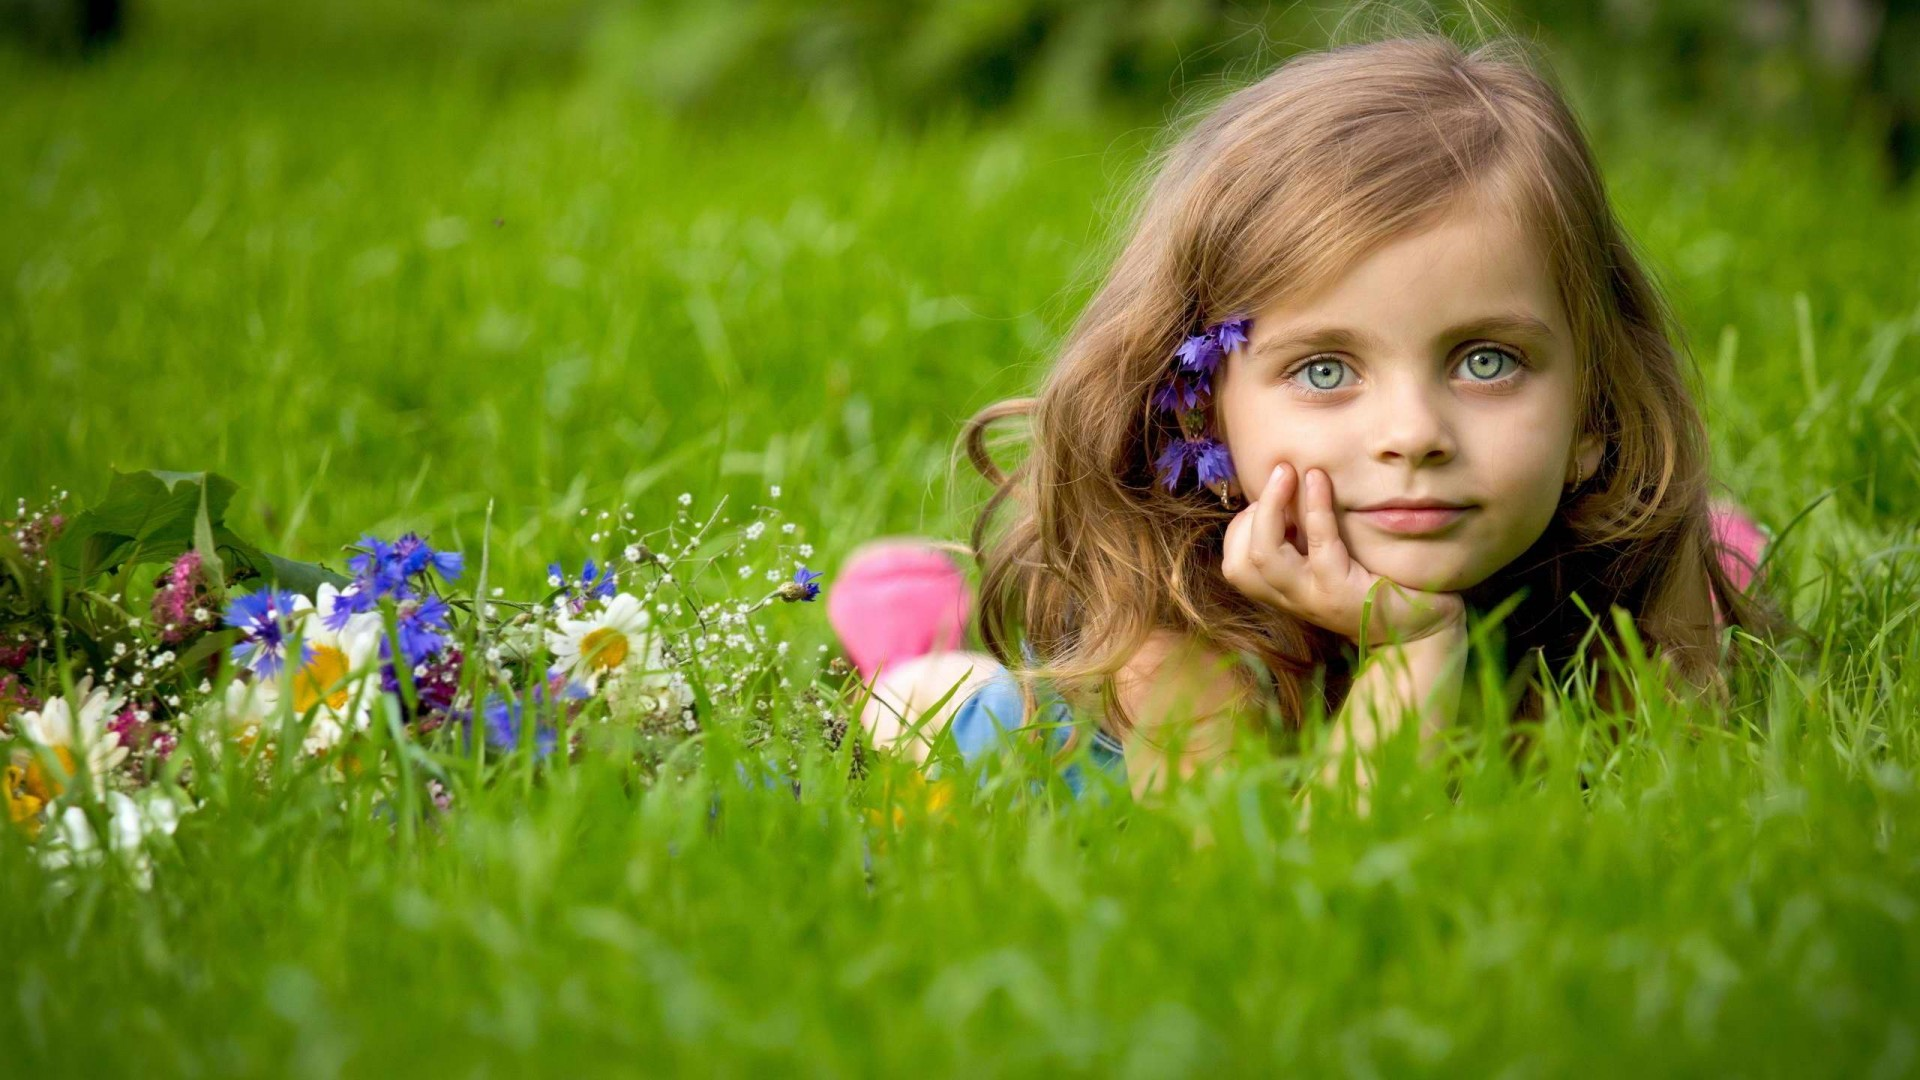 Baby Girl Cute Pictures – Wallpapers PC Free Download